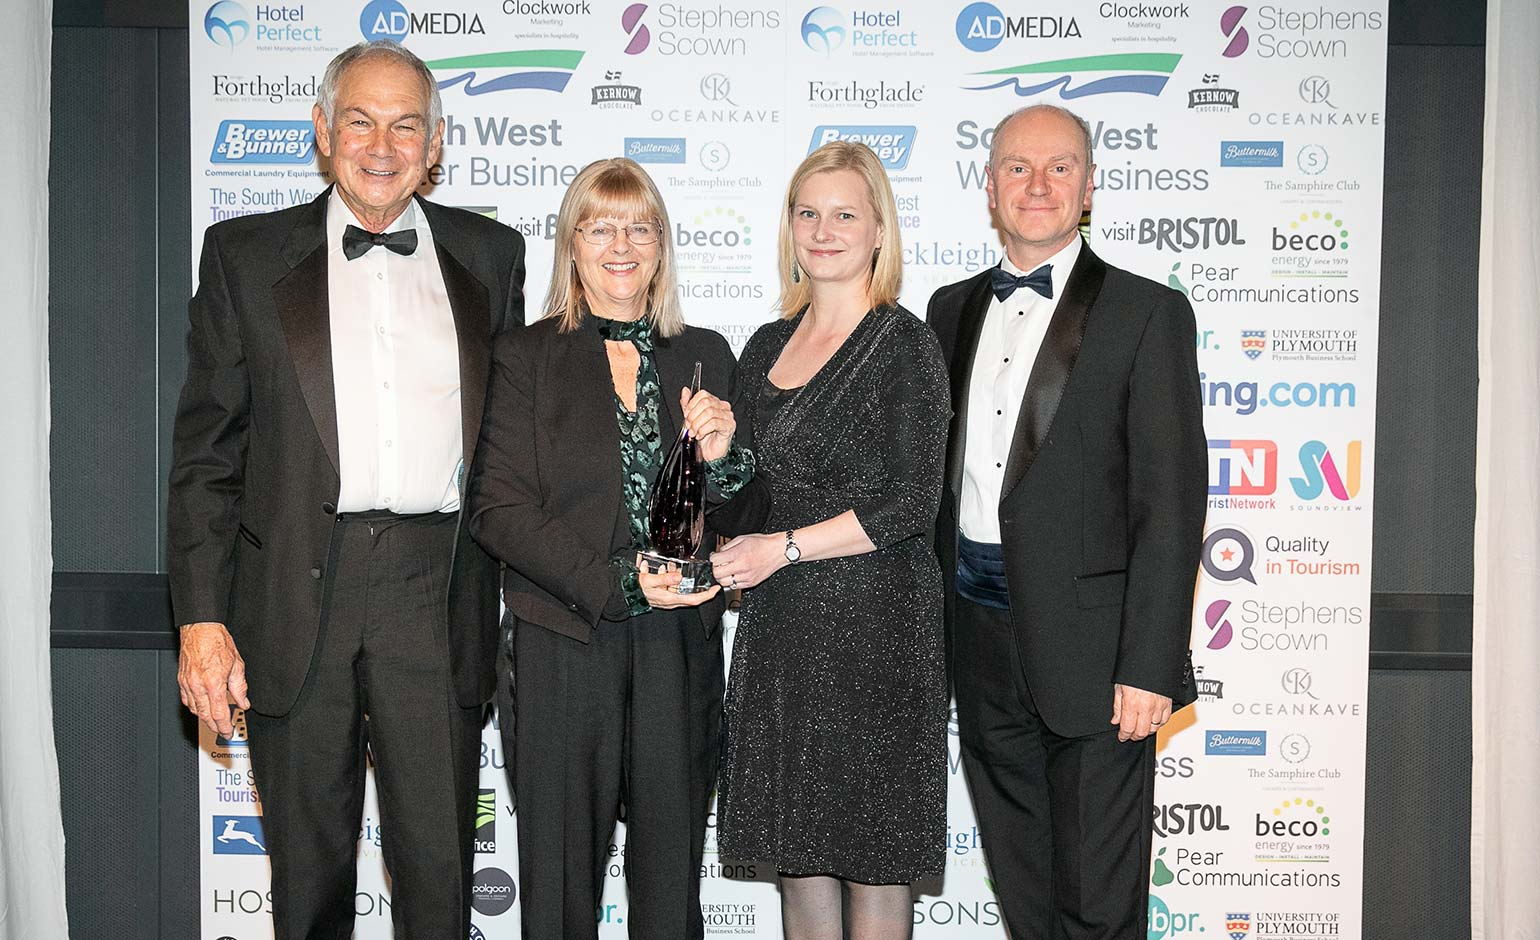 Historic Roman Baths & Pump Room wins three South West Tourism Awards